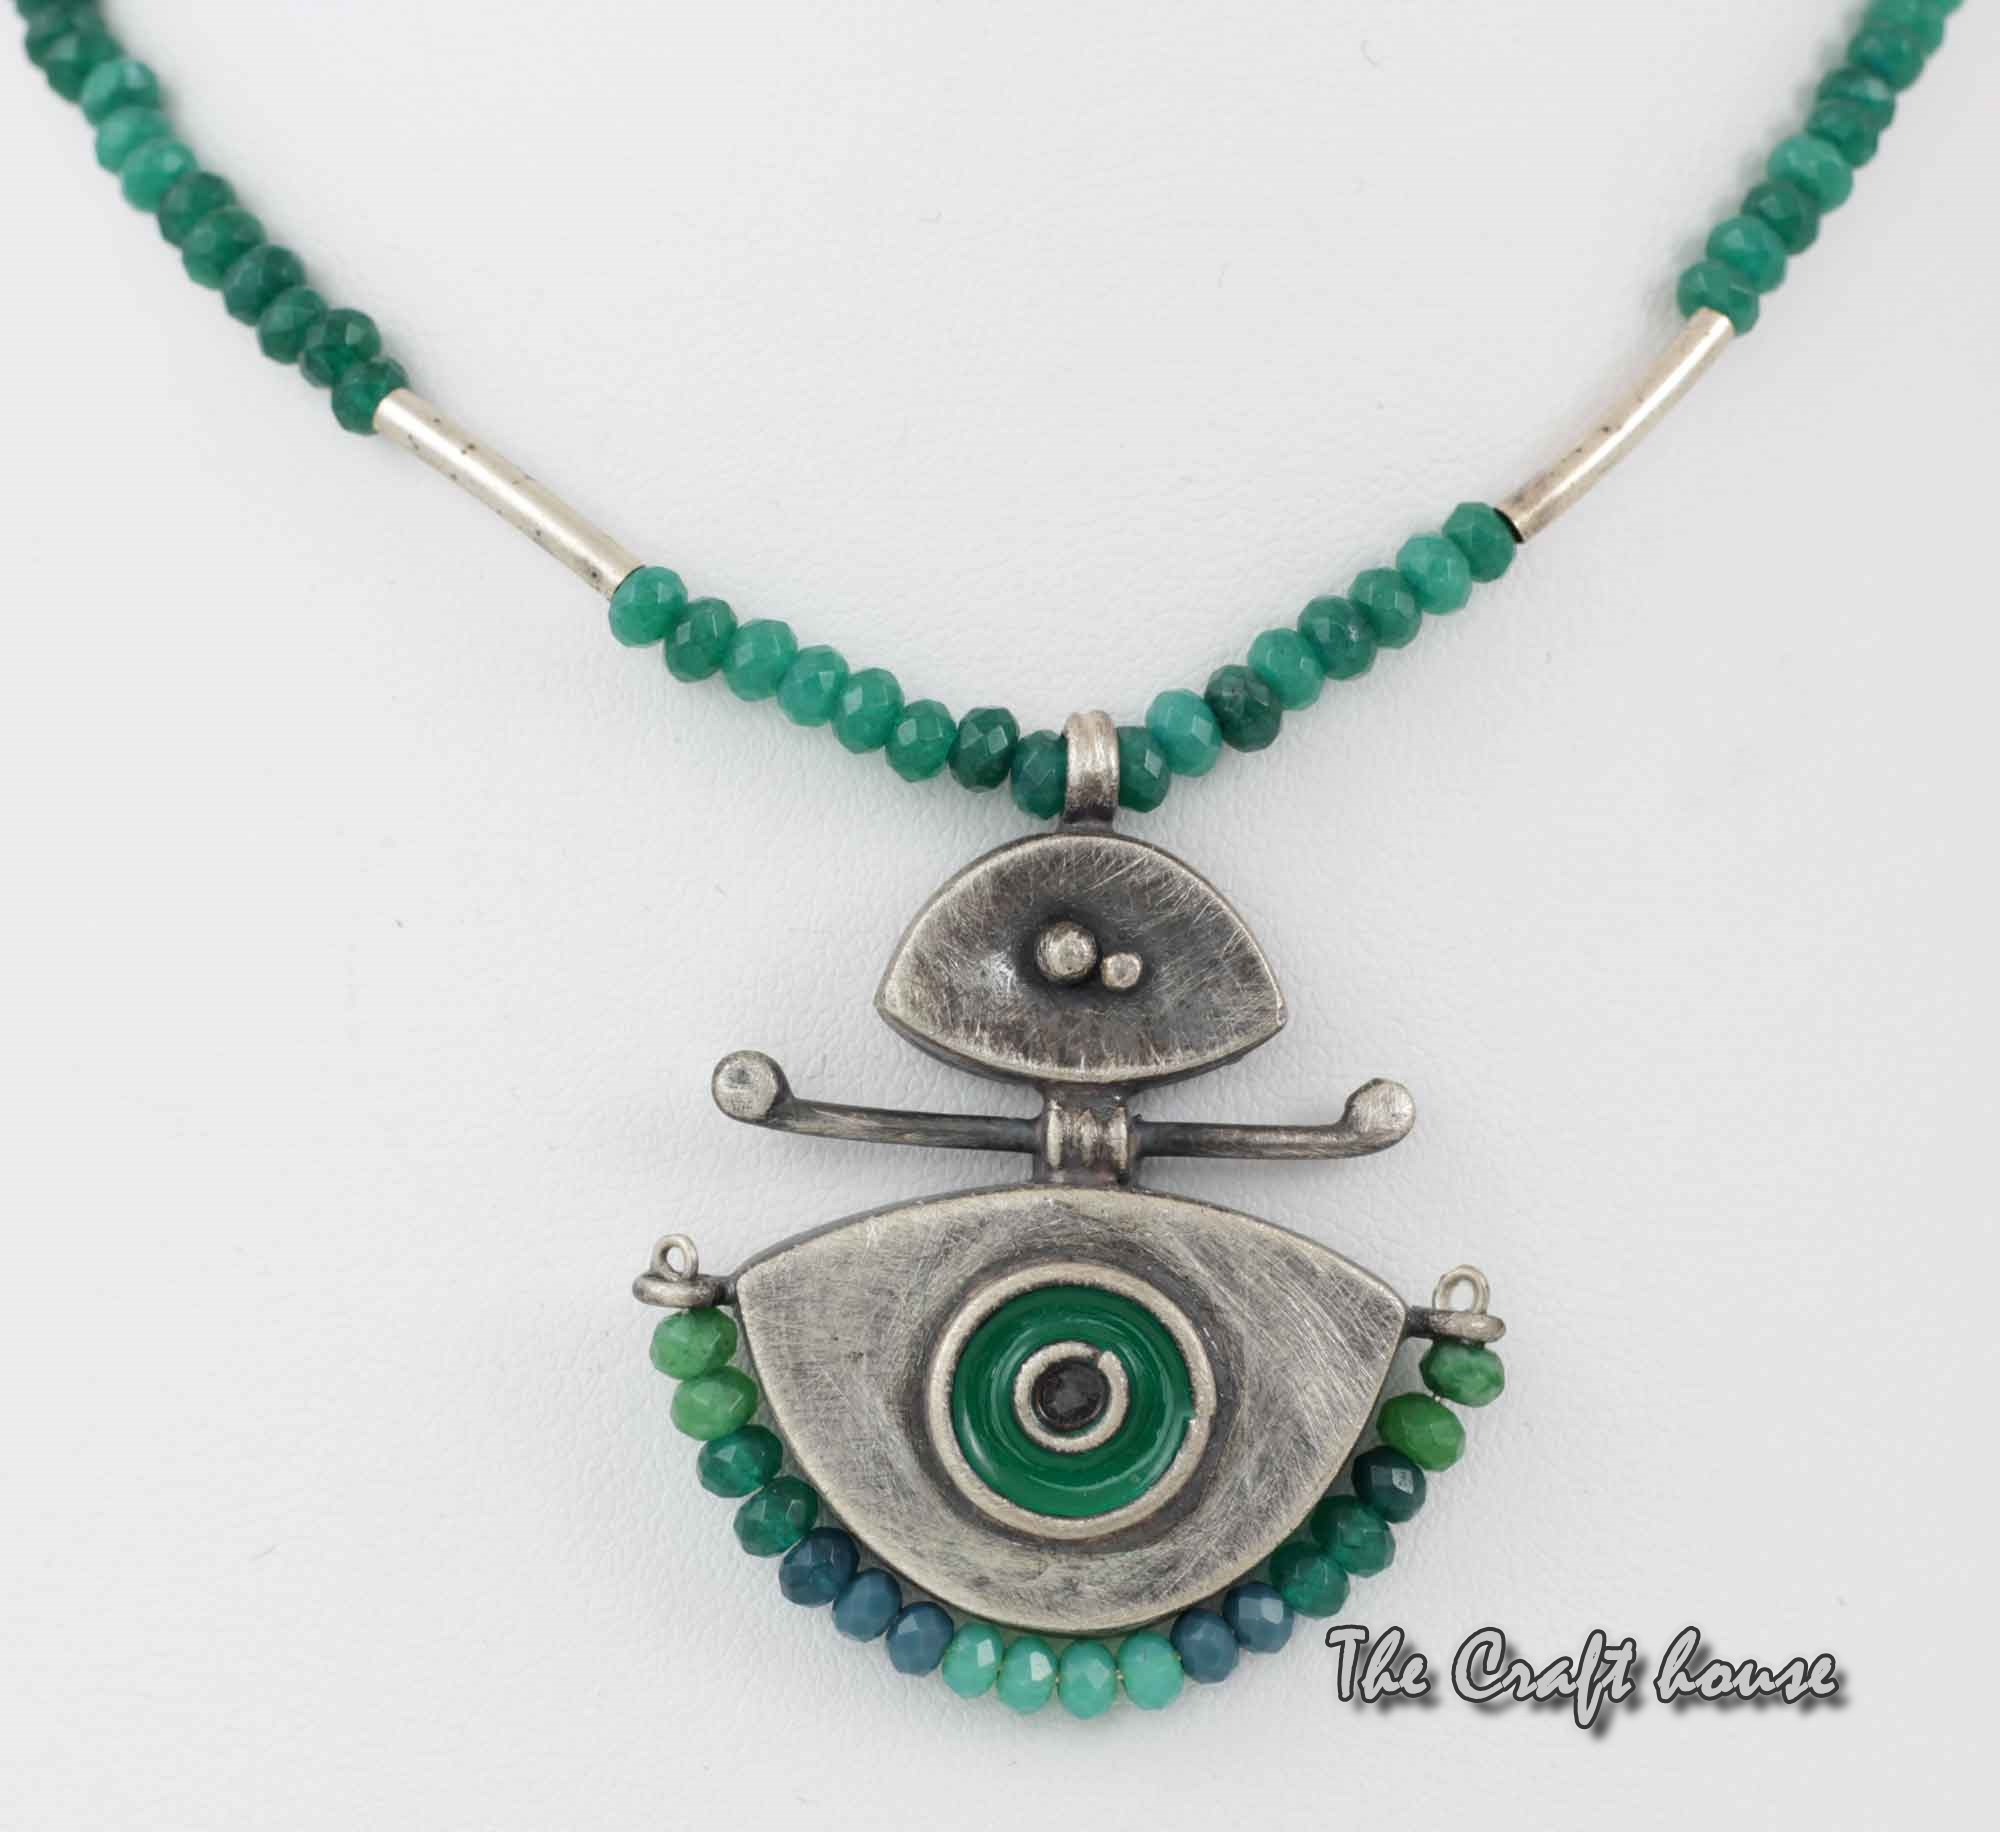 Silver necklace with beads and enamel